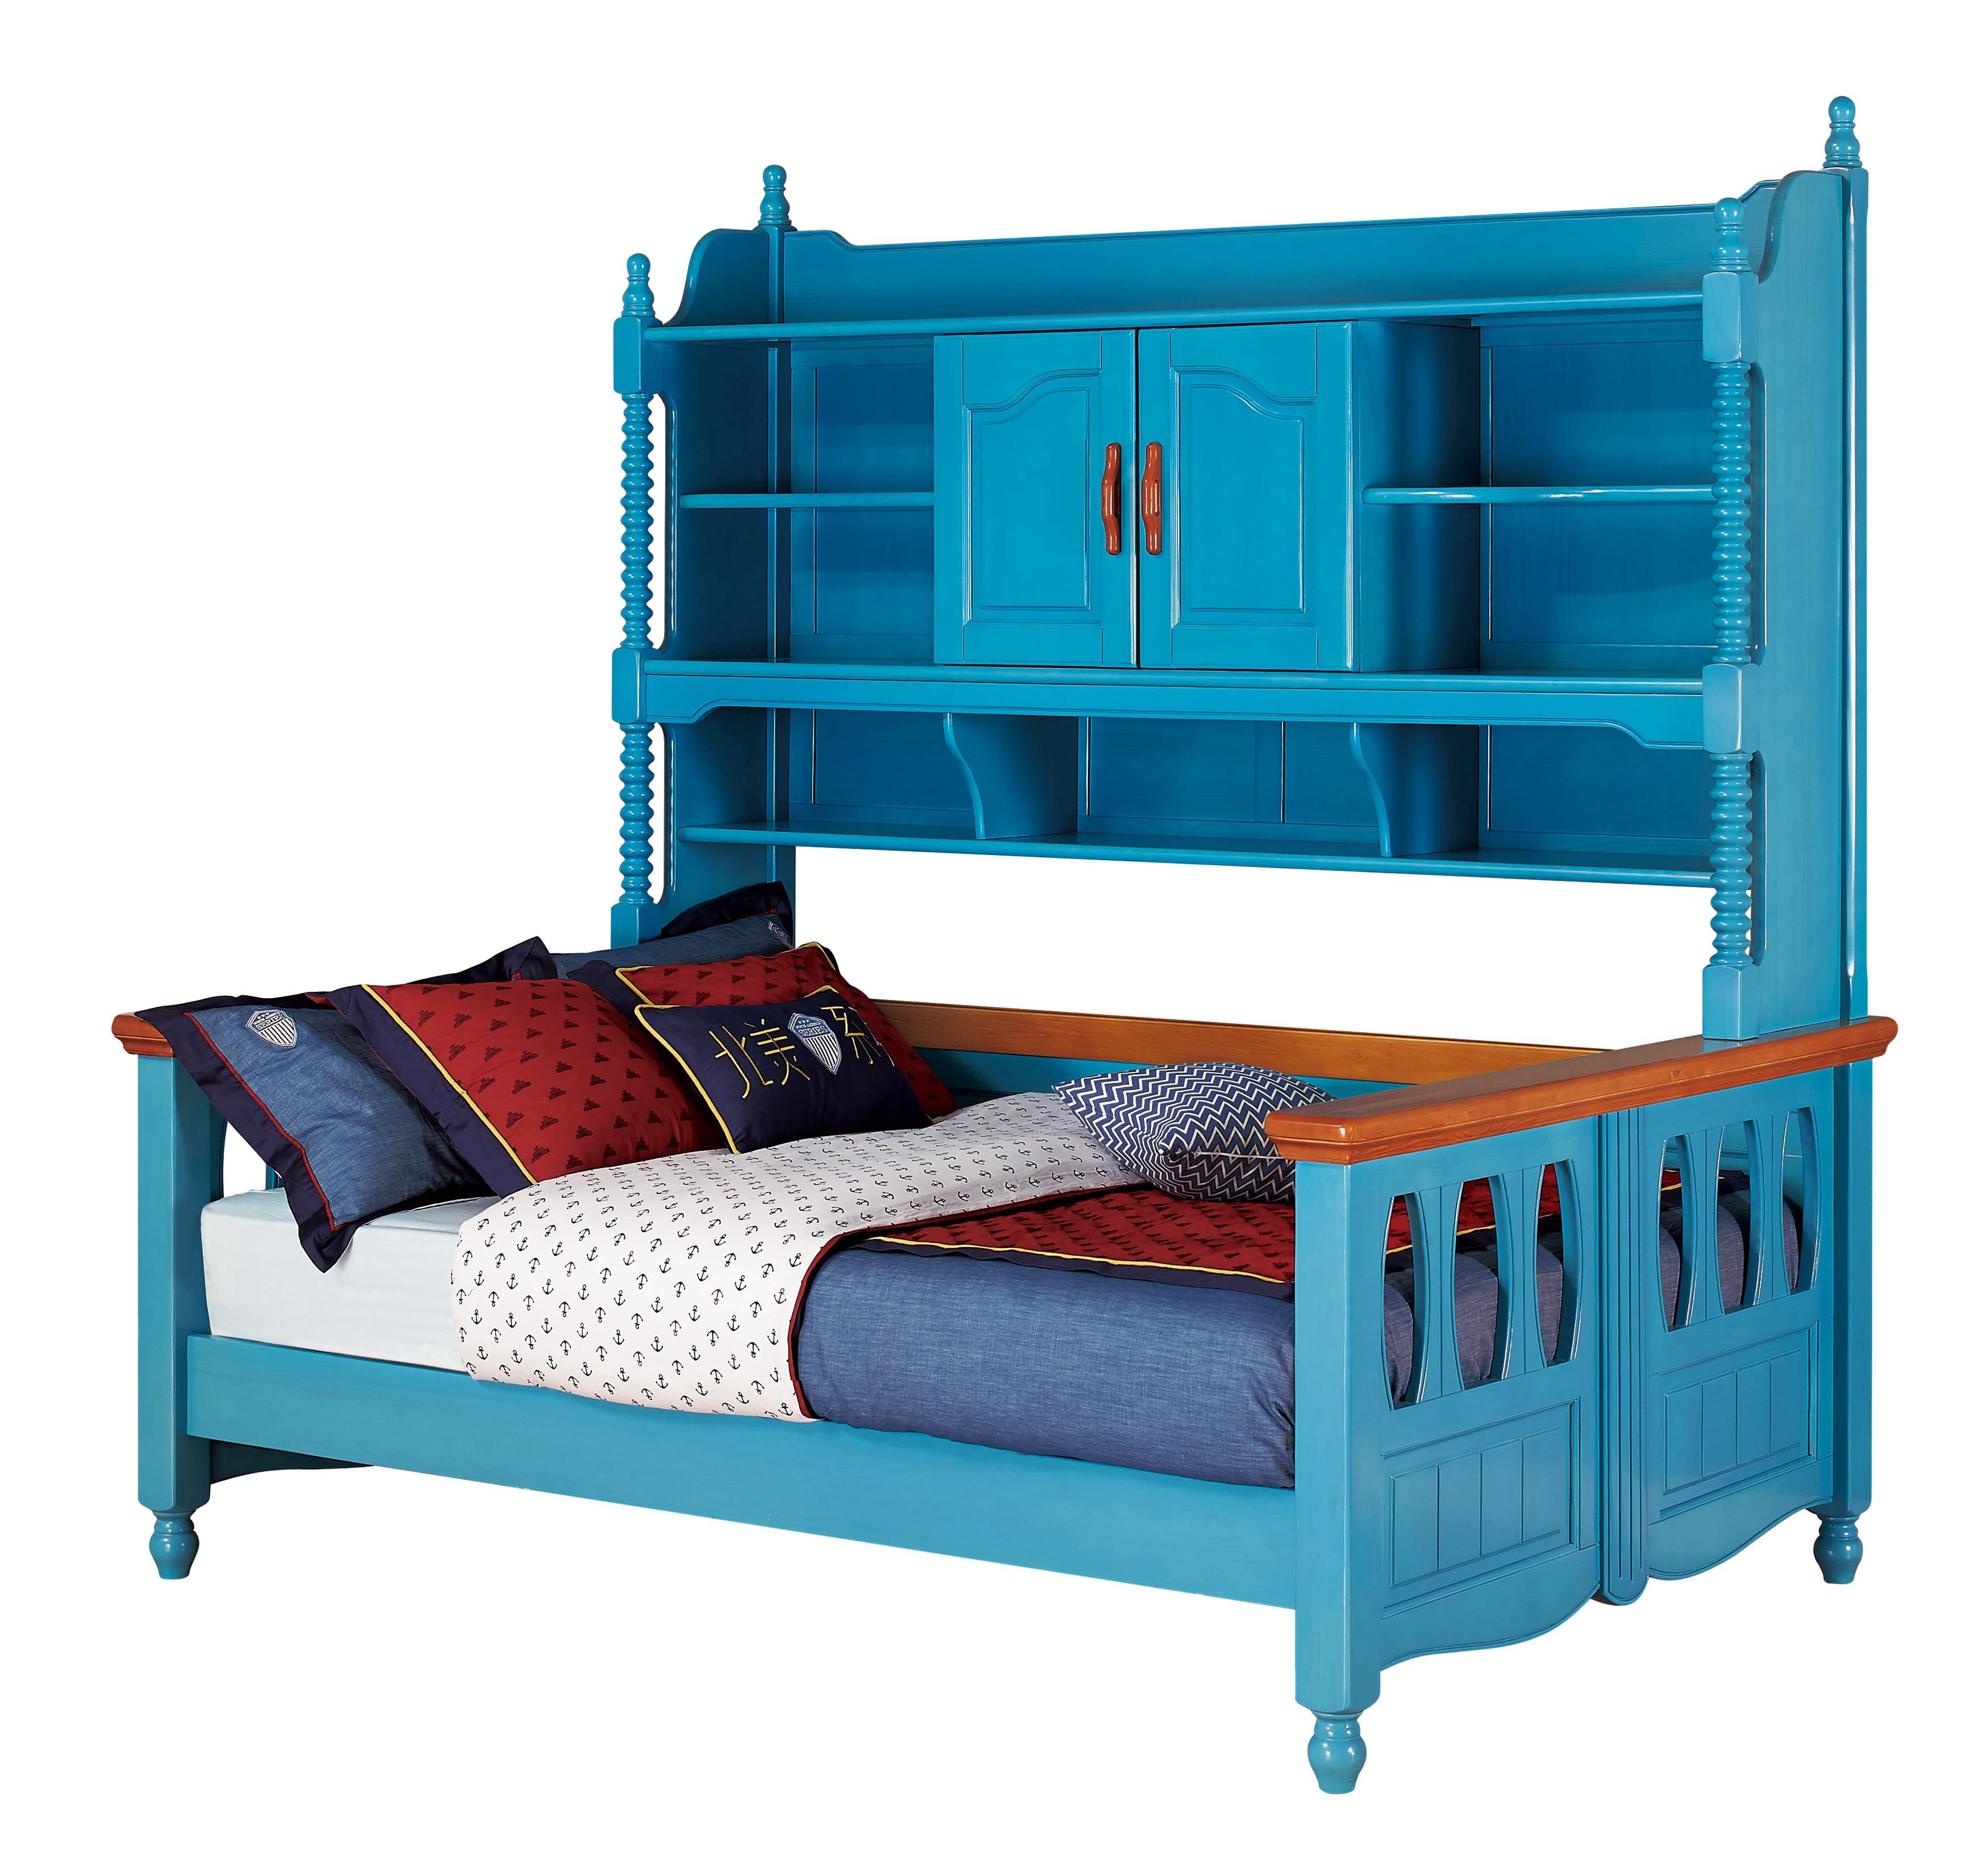 The newest double bunk beds for adults children camping bed cots Lowest Price